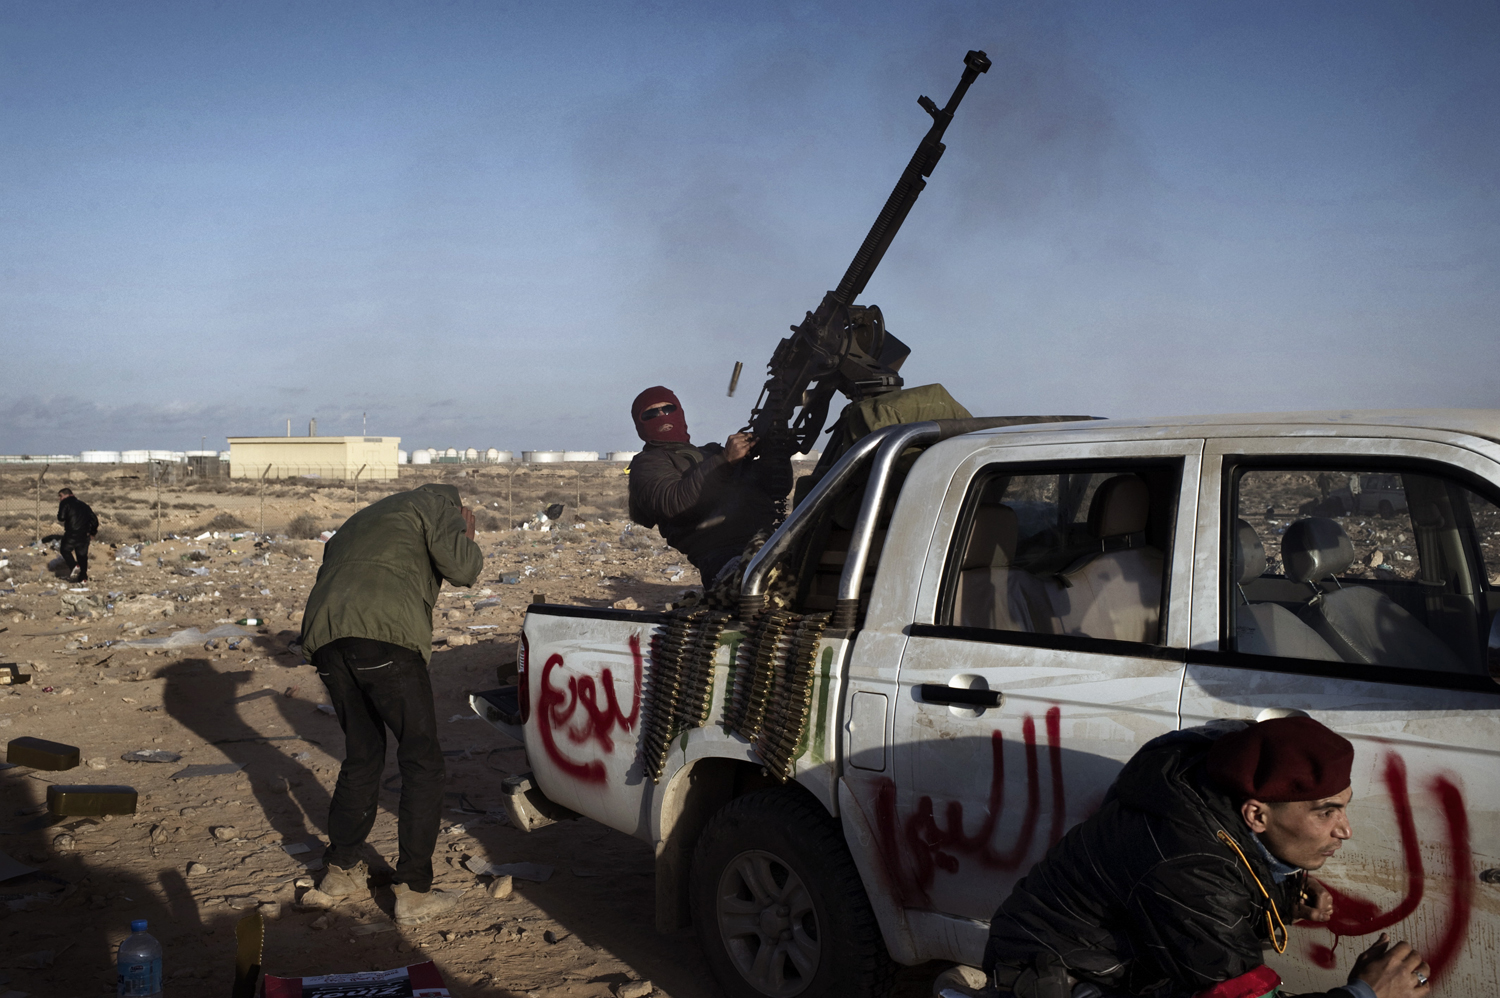 Rebels fire an anti-aircraft gun at Libyan jets near a checkpoint in Ras Lanuf, March 7, 2011.